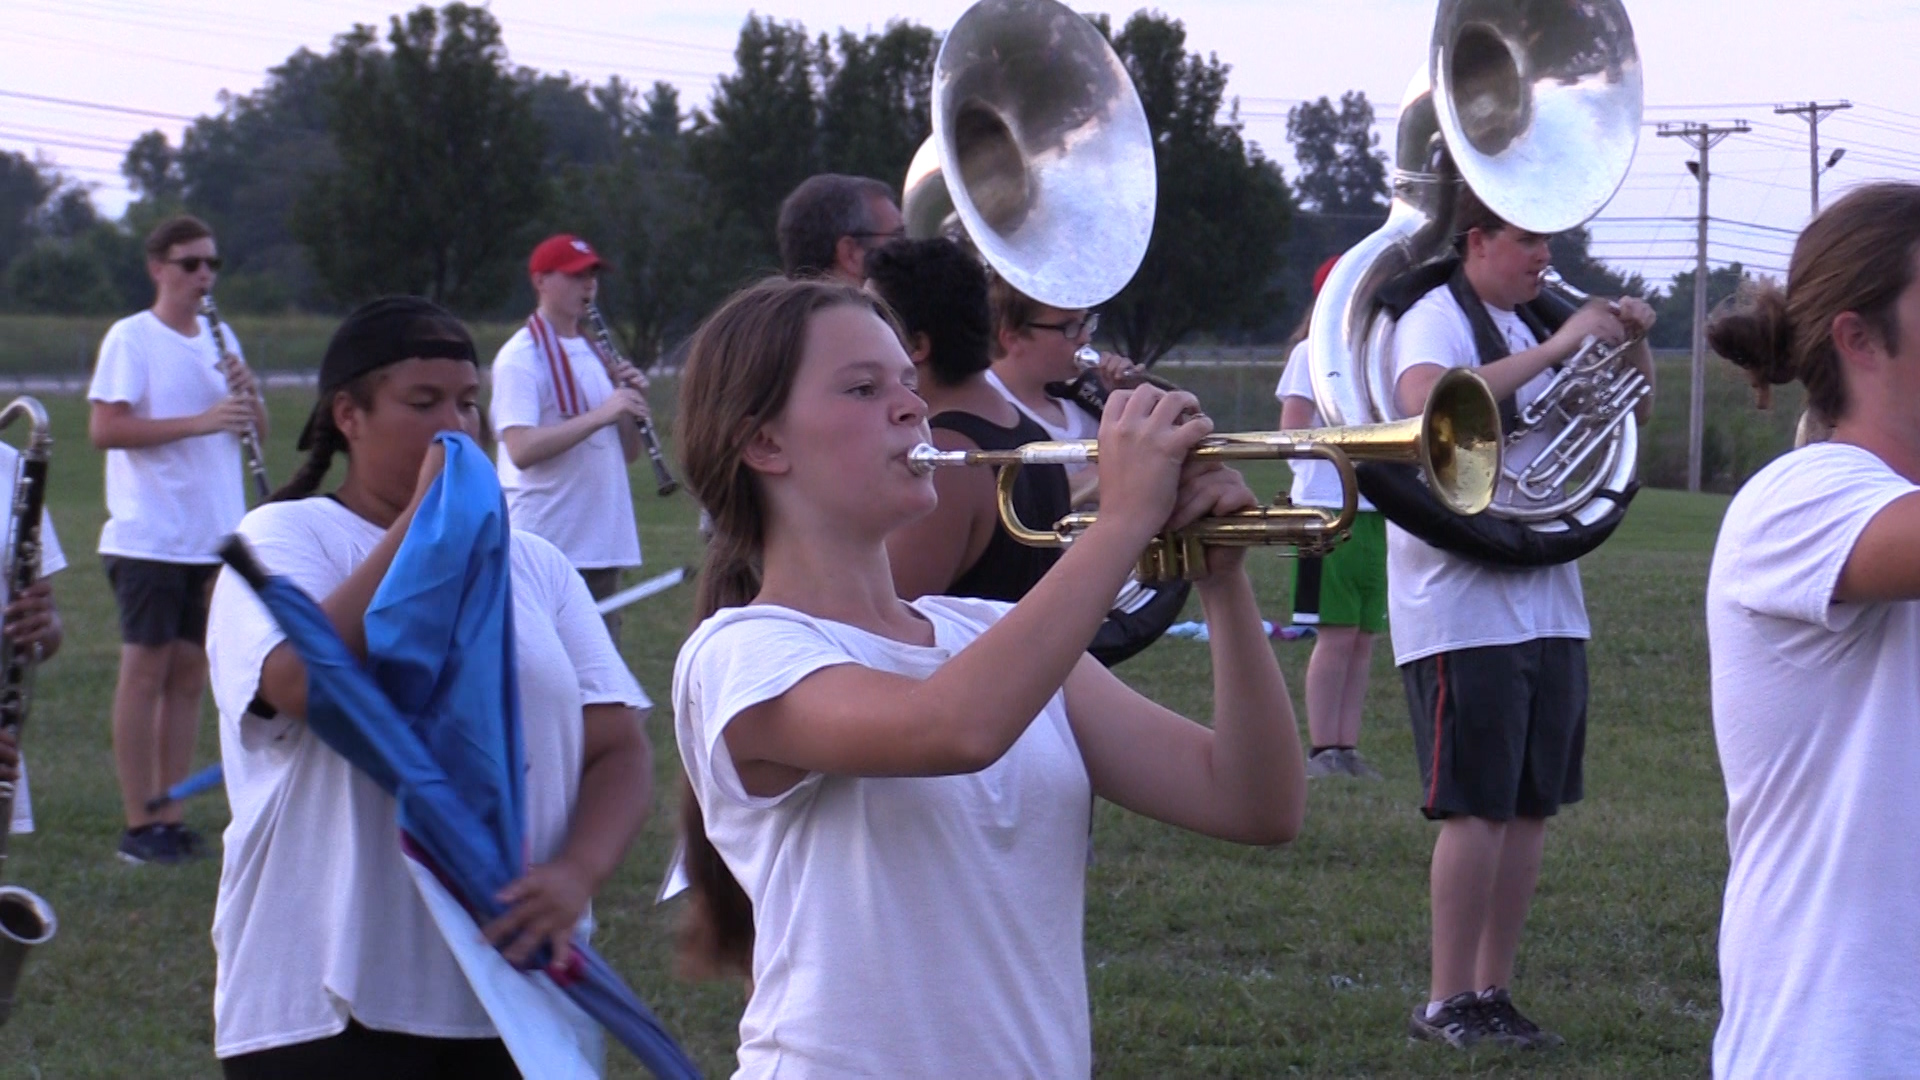 VIDEO - Behind the scenes at Band Camp